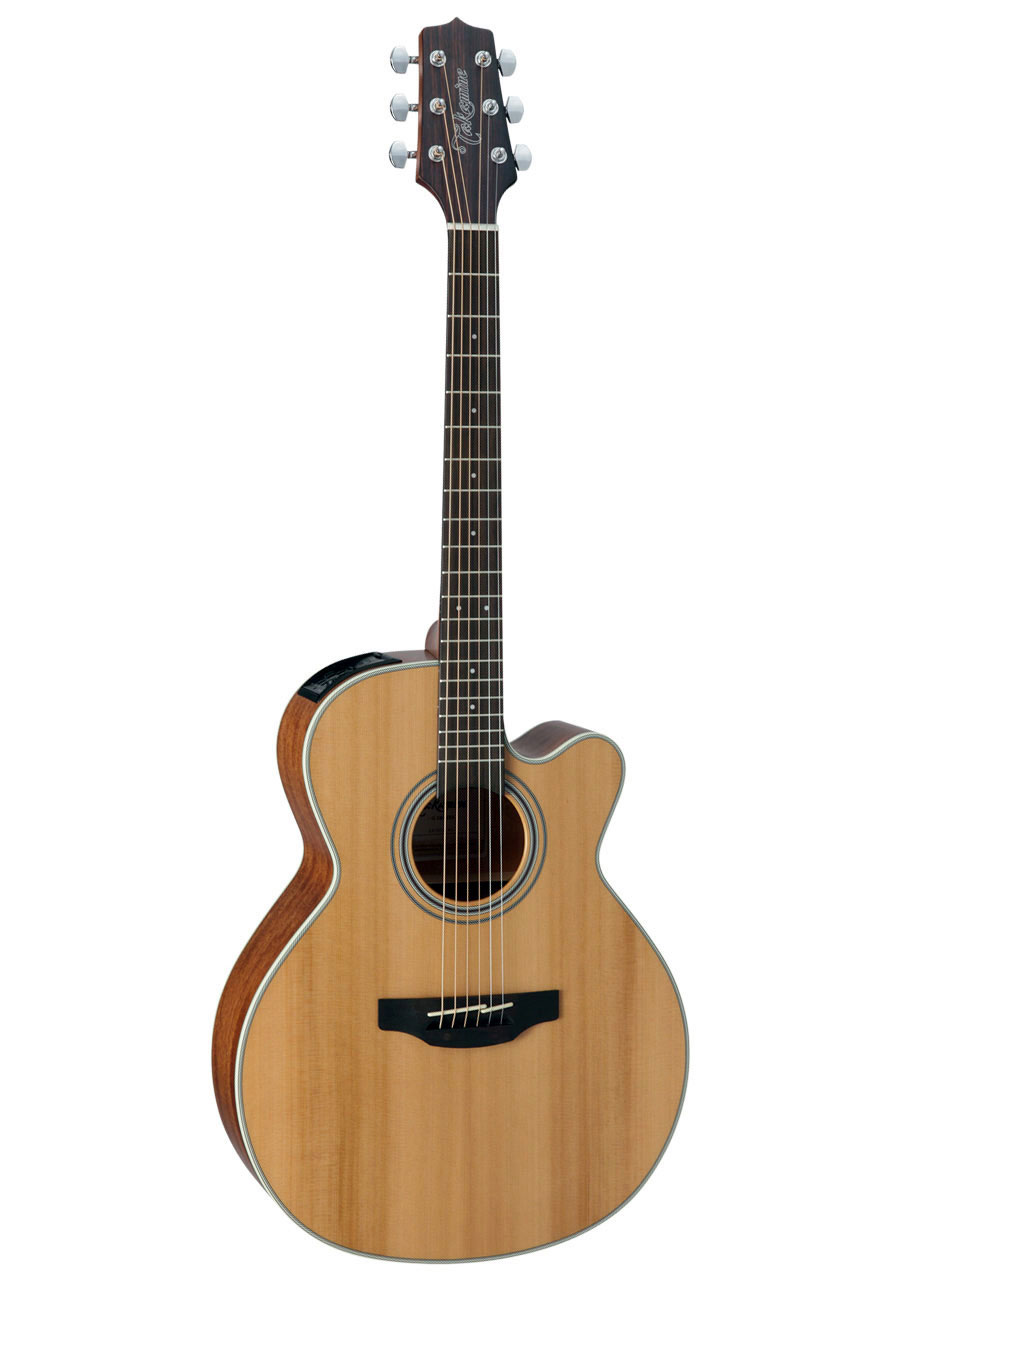 Oscar Schmidt By Washburn Ou18 Soprano Ukulele Spalted Maple New also 191891863934 furthermore Index furthermore 182189218666 in addition 1555550 Oscar Schmidt Auditorium Florentine A E Guitar Trans Purple Burst On Board Oaceftpb. on oscar schmidt washburn electric guitars